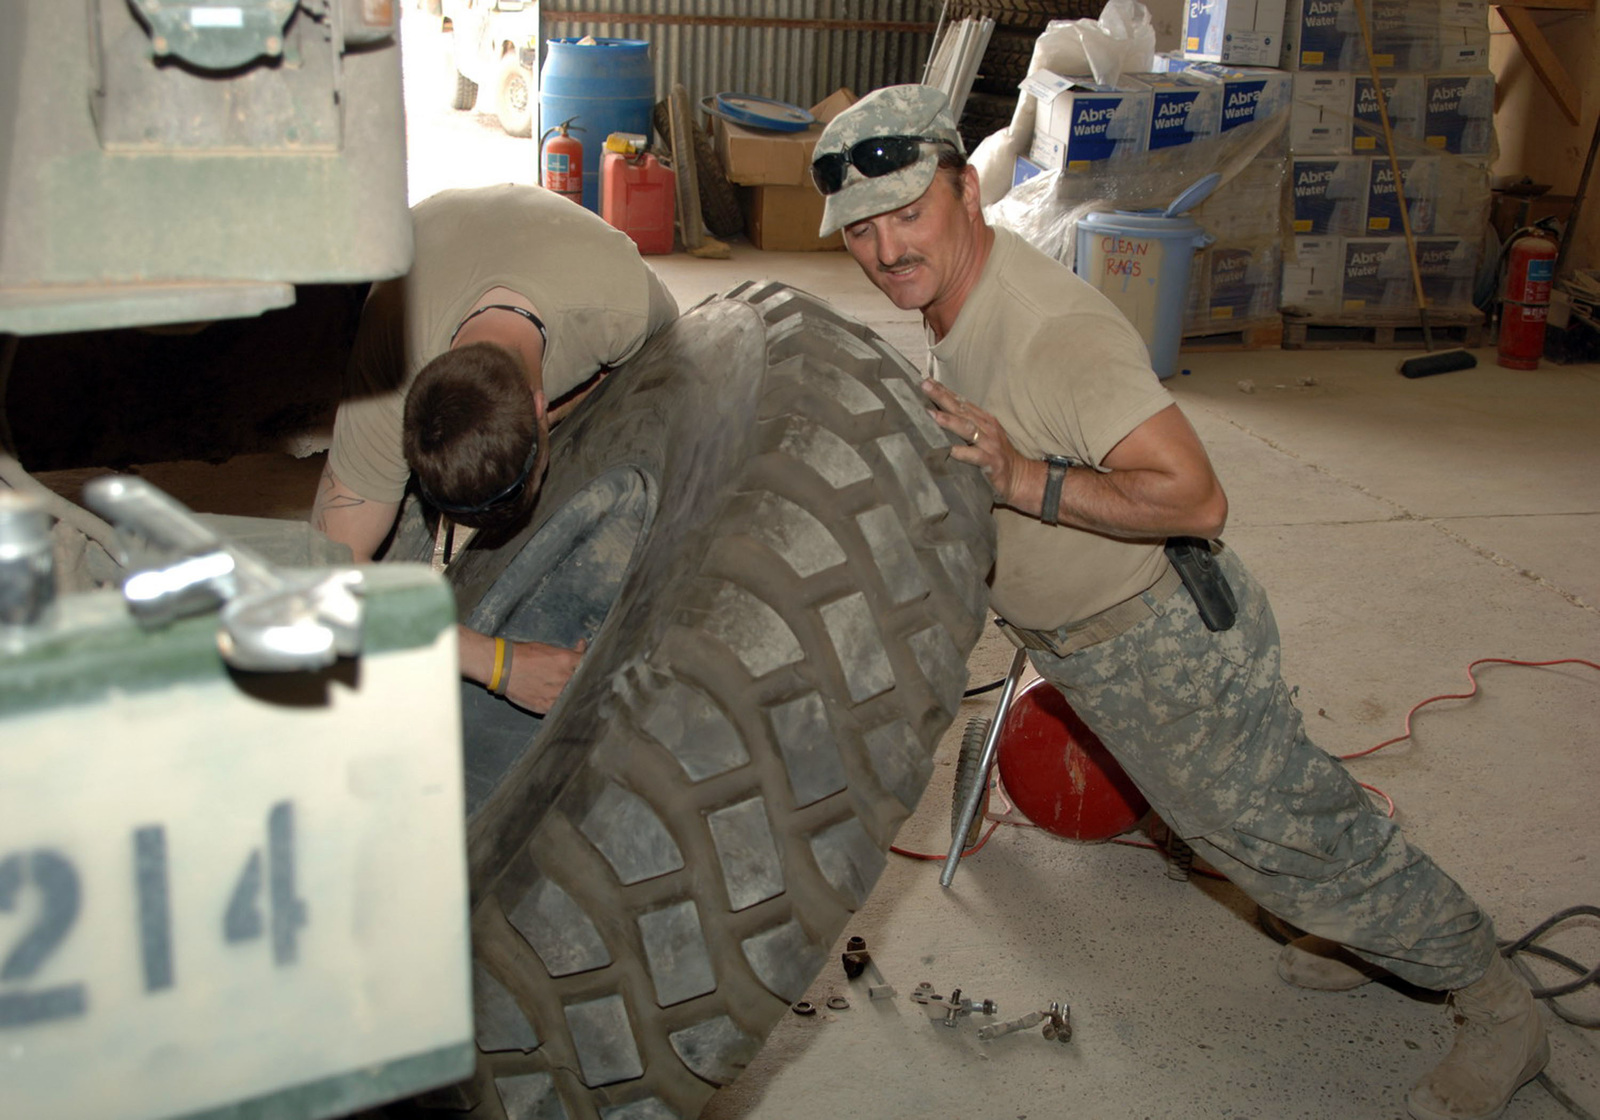 STAFF SGT. Michael Apgar (right) from the the 324th Psychological Operations Company (POC), Colo. USAR, lends his weight against the tire from a 5-ton vehicle, to hold it up, while CPL. Guage Krein, from the 324th Psychological Operations Co, (POC), Colo. USAR, works on the tire. (U.S. Army photo by PFC. William Servinski II) (Released)